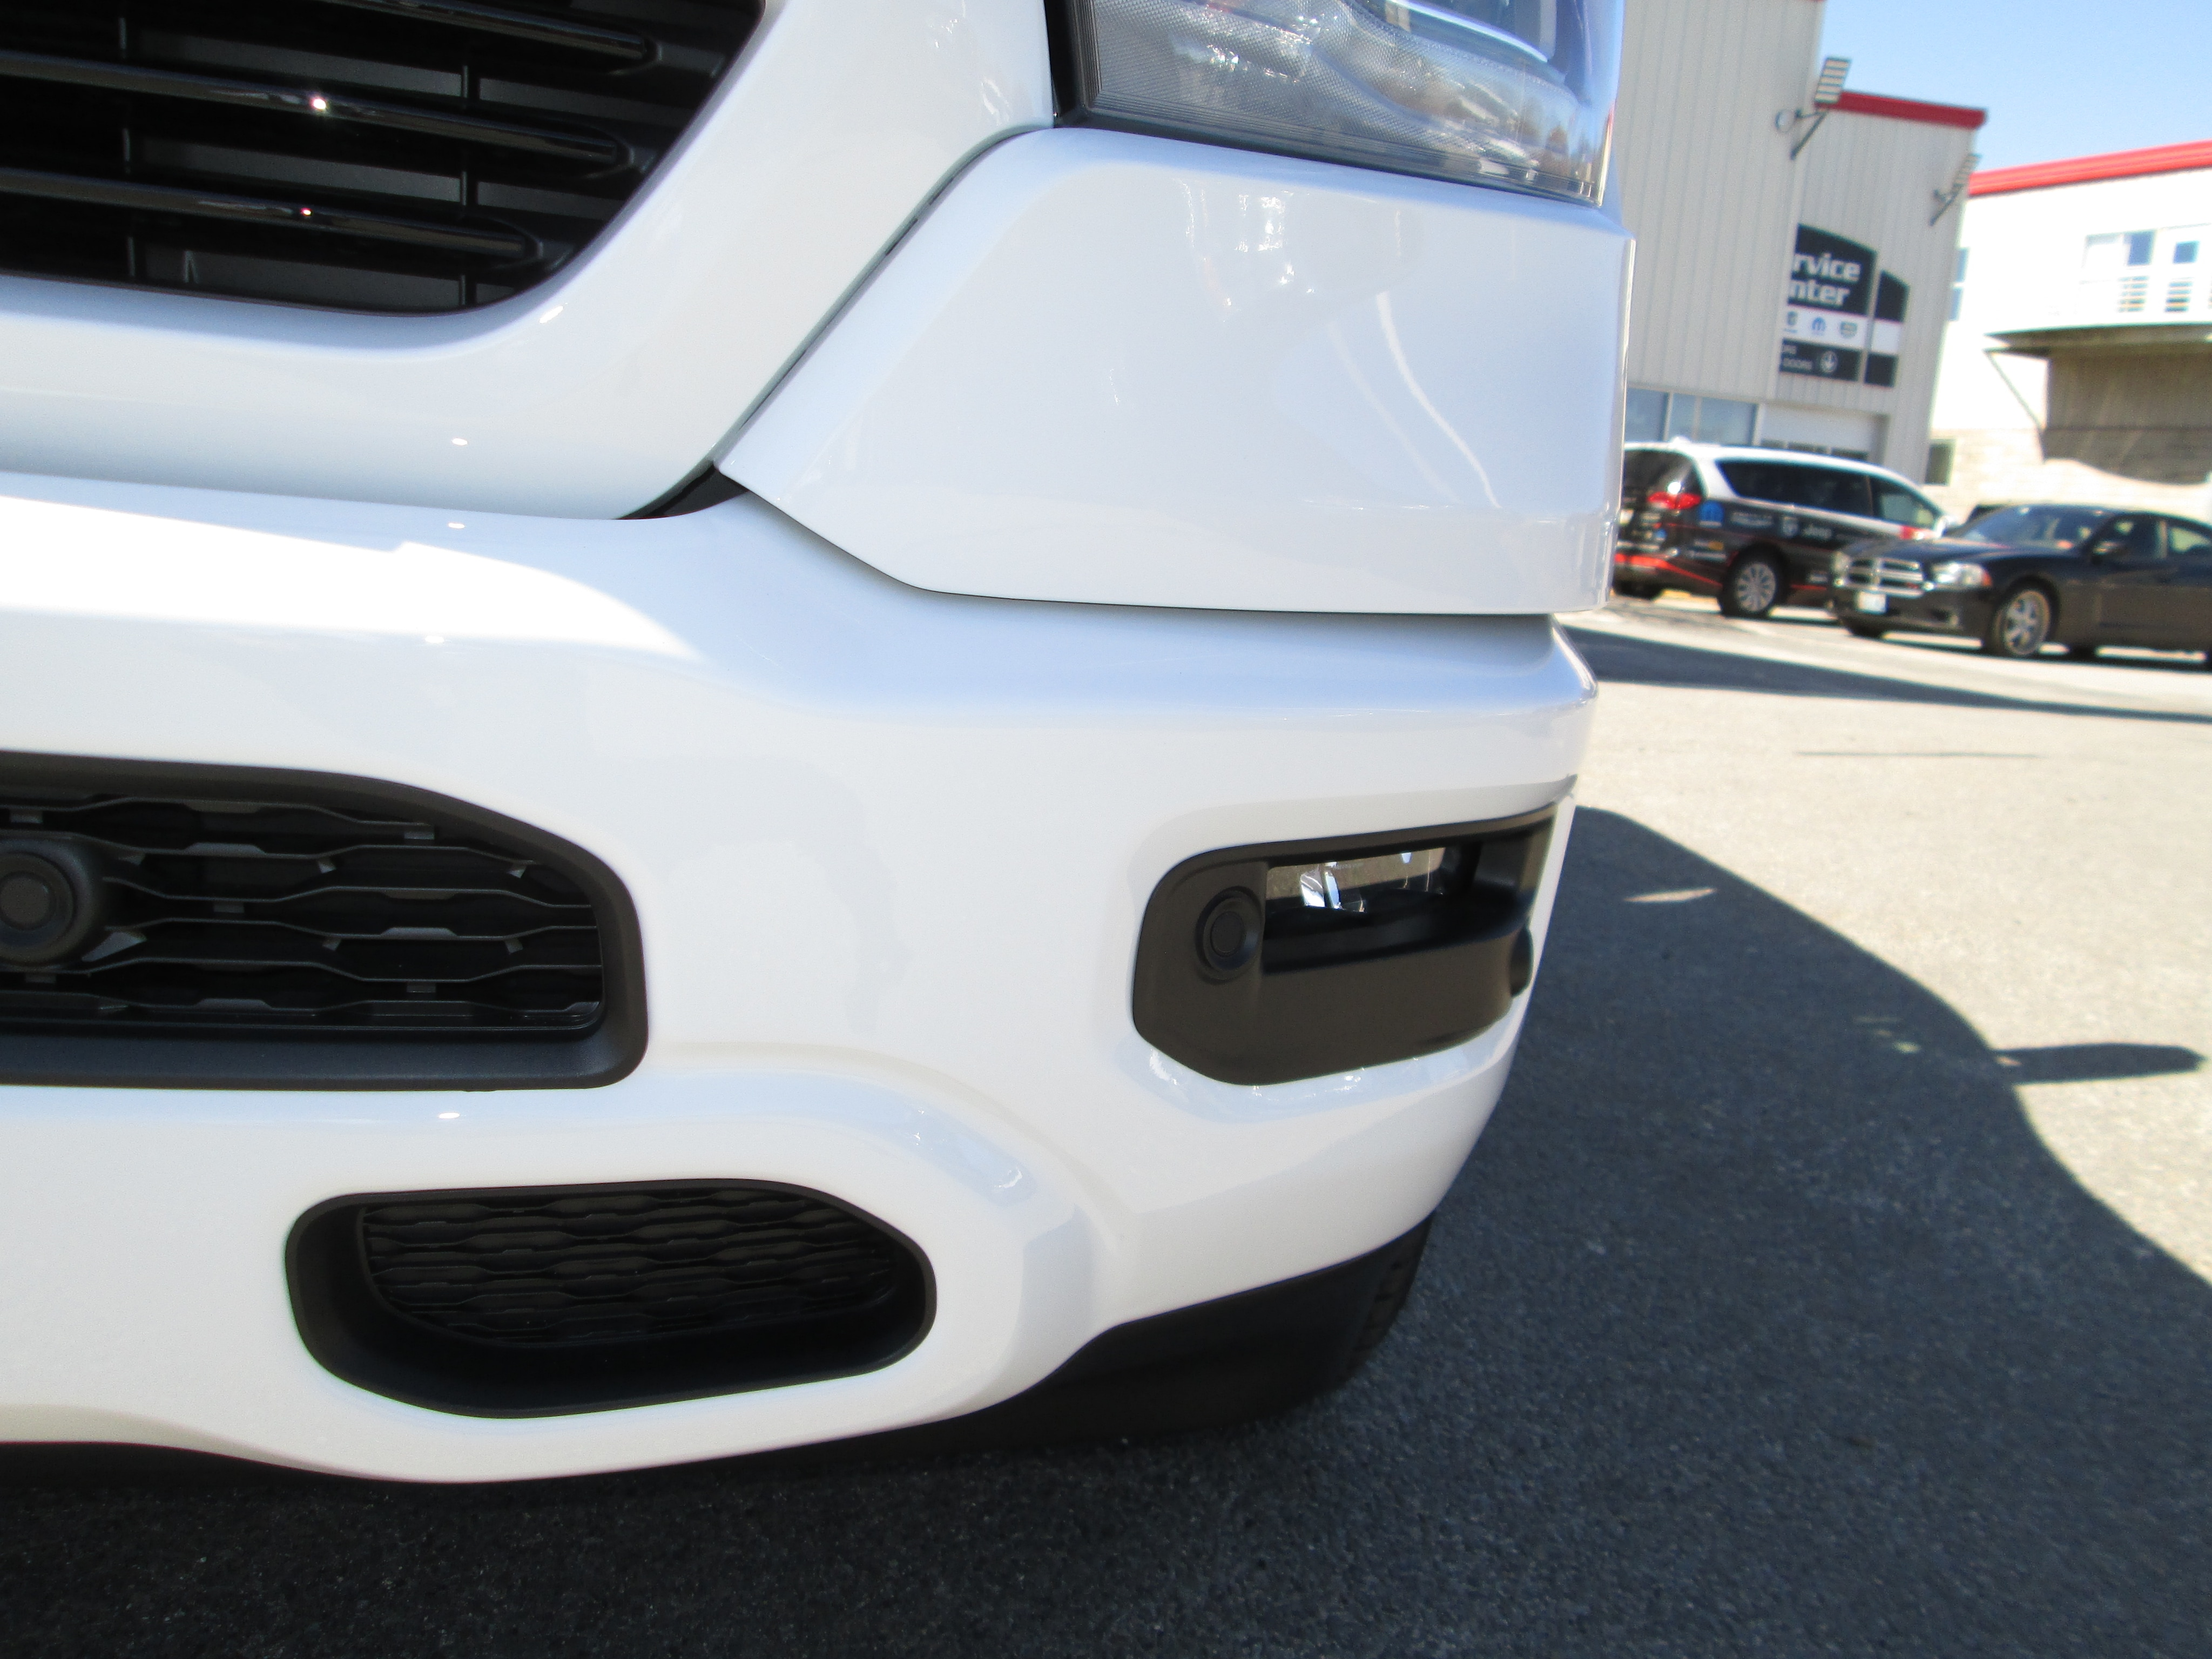 2019 Ram 1500 Crew Cab 4x4, Pickup #9RA23700 - photo 5